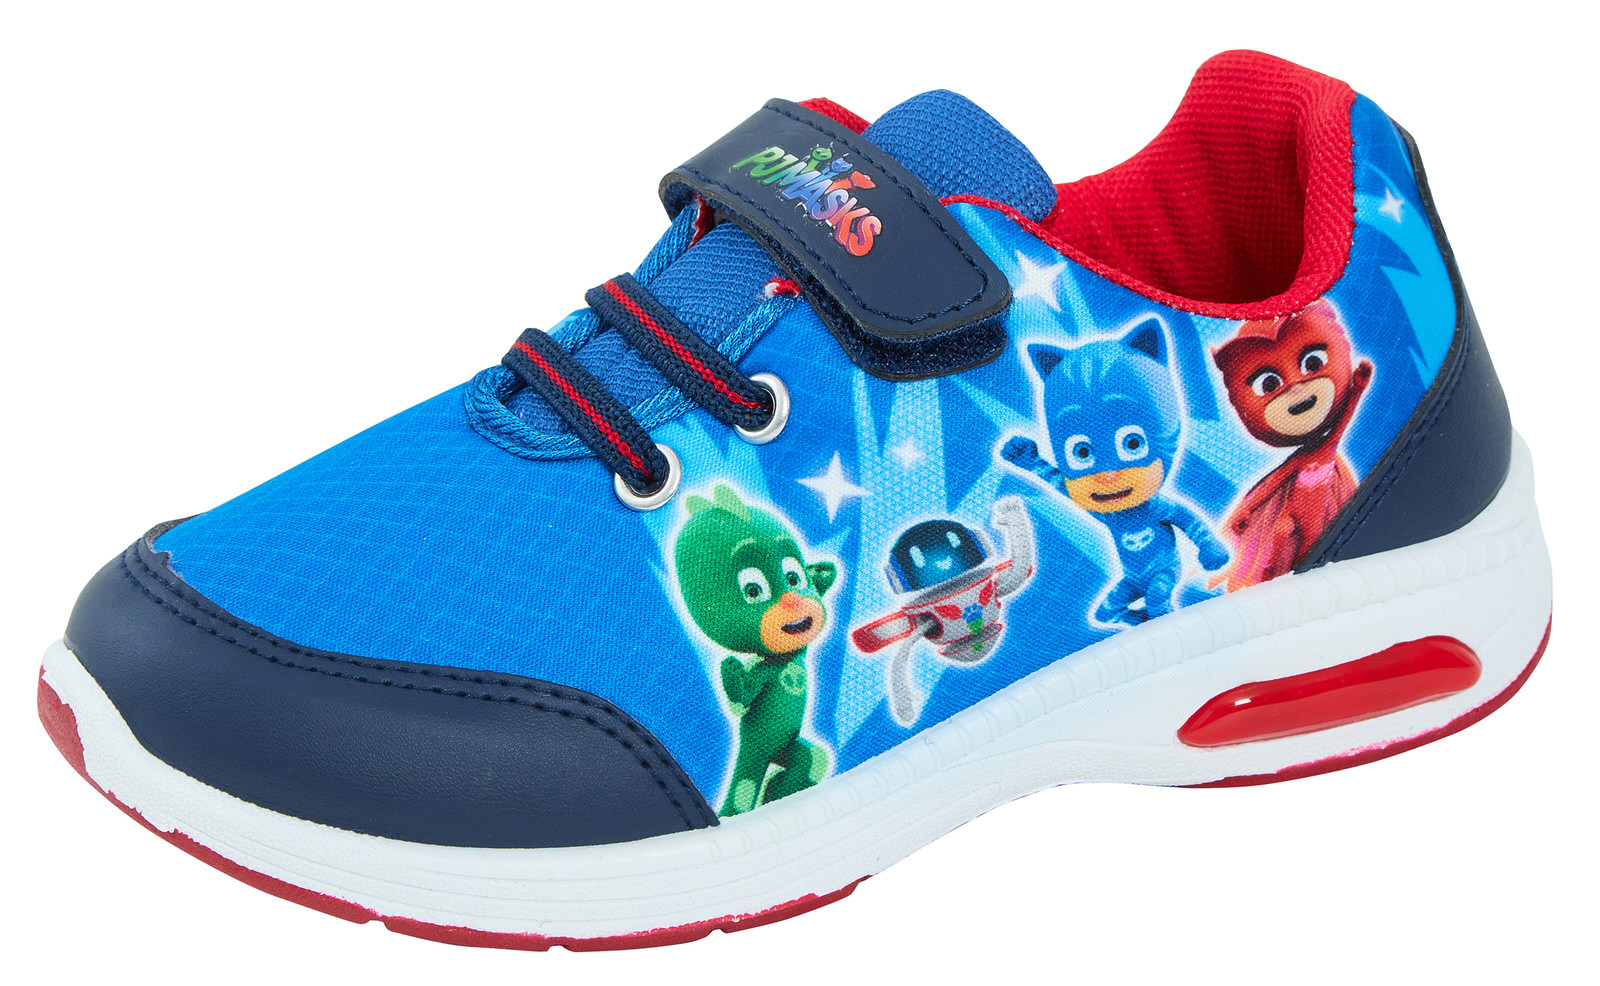 Boys P J Masks Blue Soft Touch  Casual Trainers Sports Shoes Sizes 6-11.5 Child